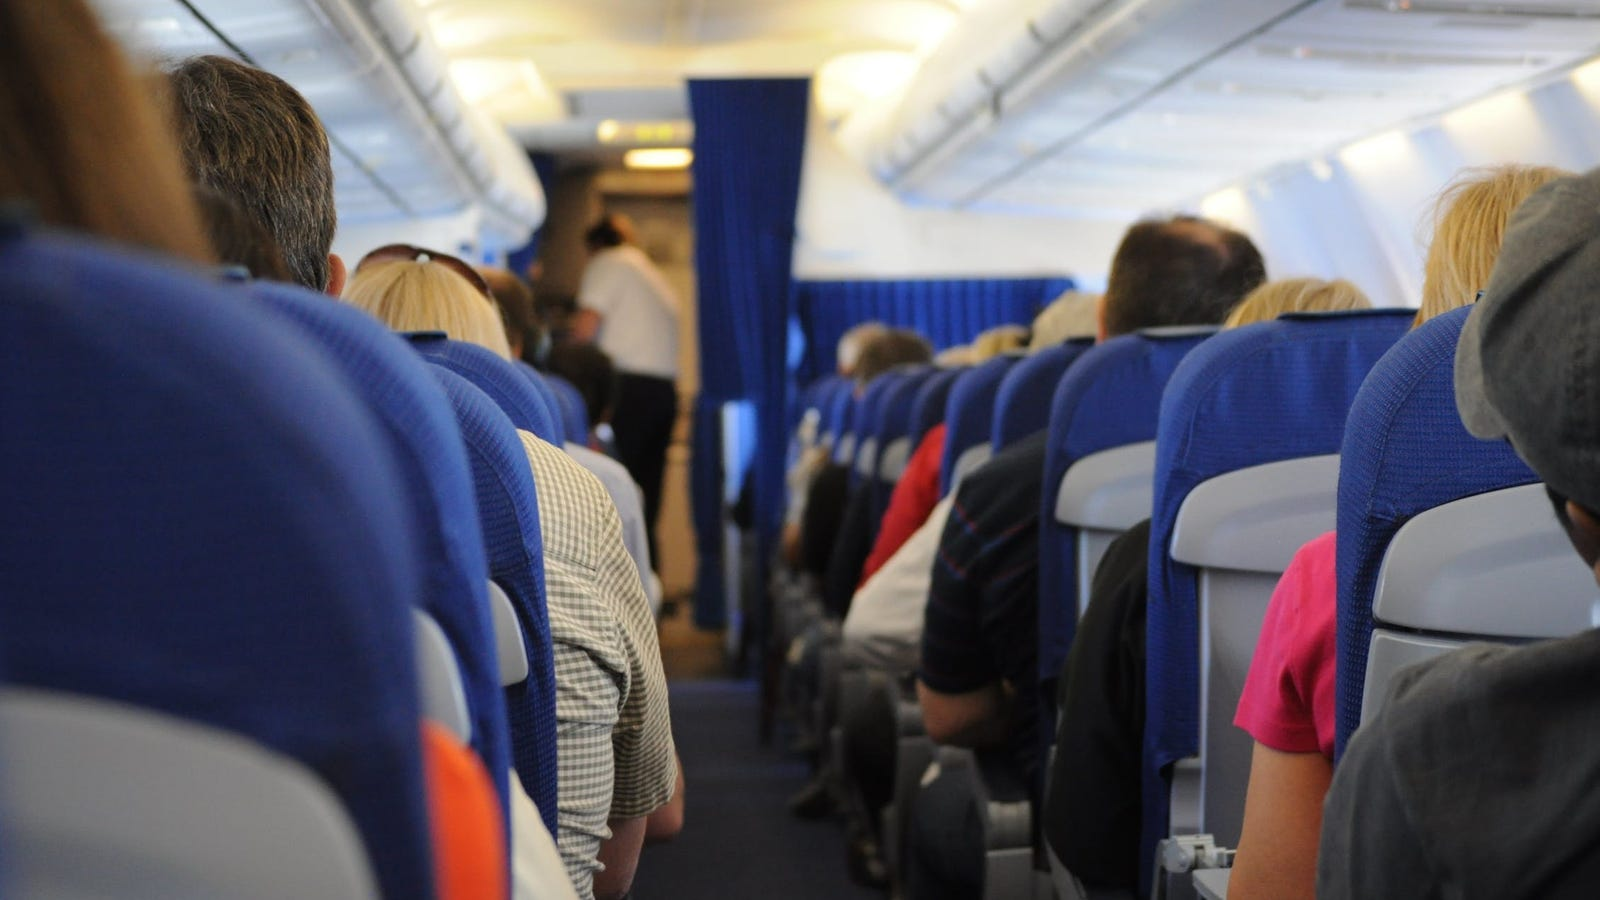 Why You Should Consider Seat Size When Booking a Flight